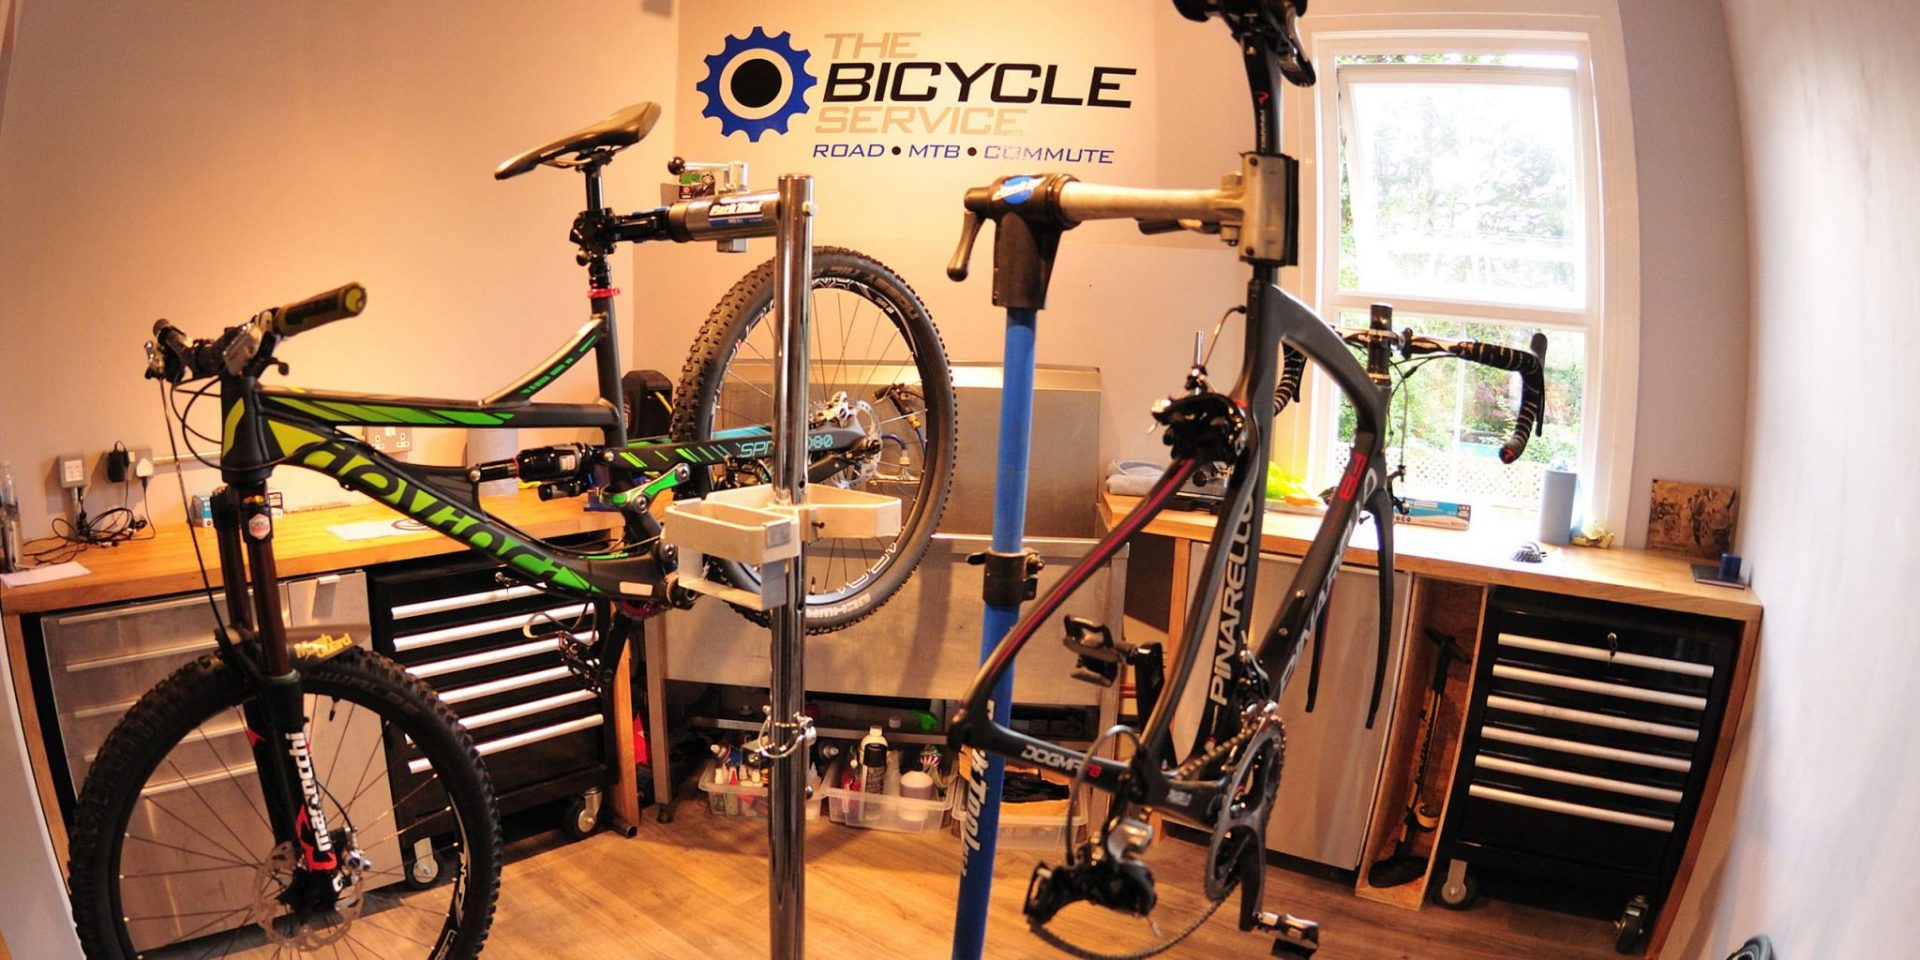 The Bicycle Service Double Drop Team Sponsor